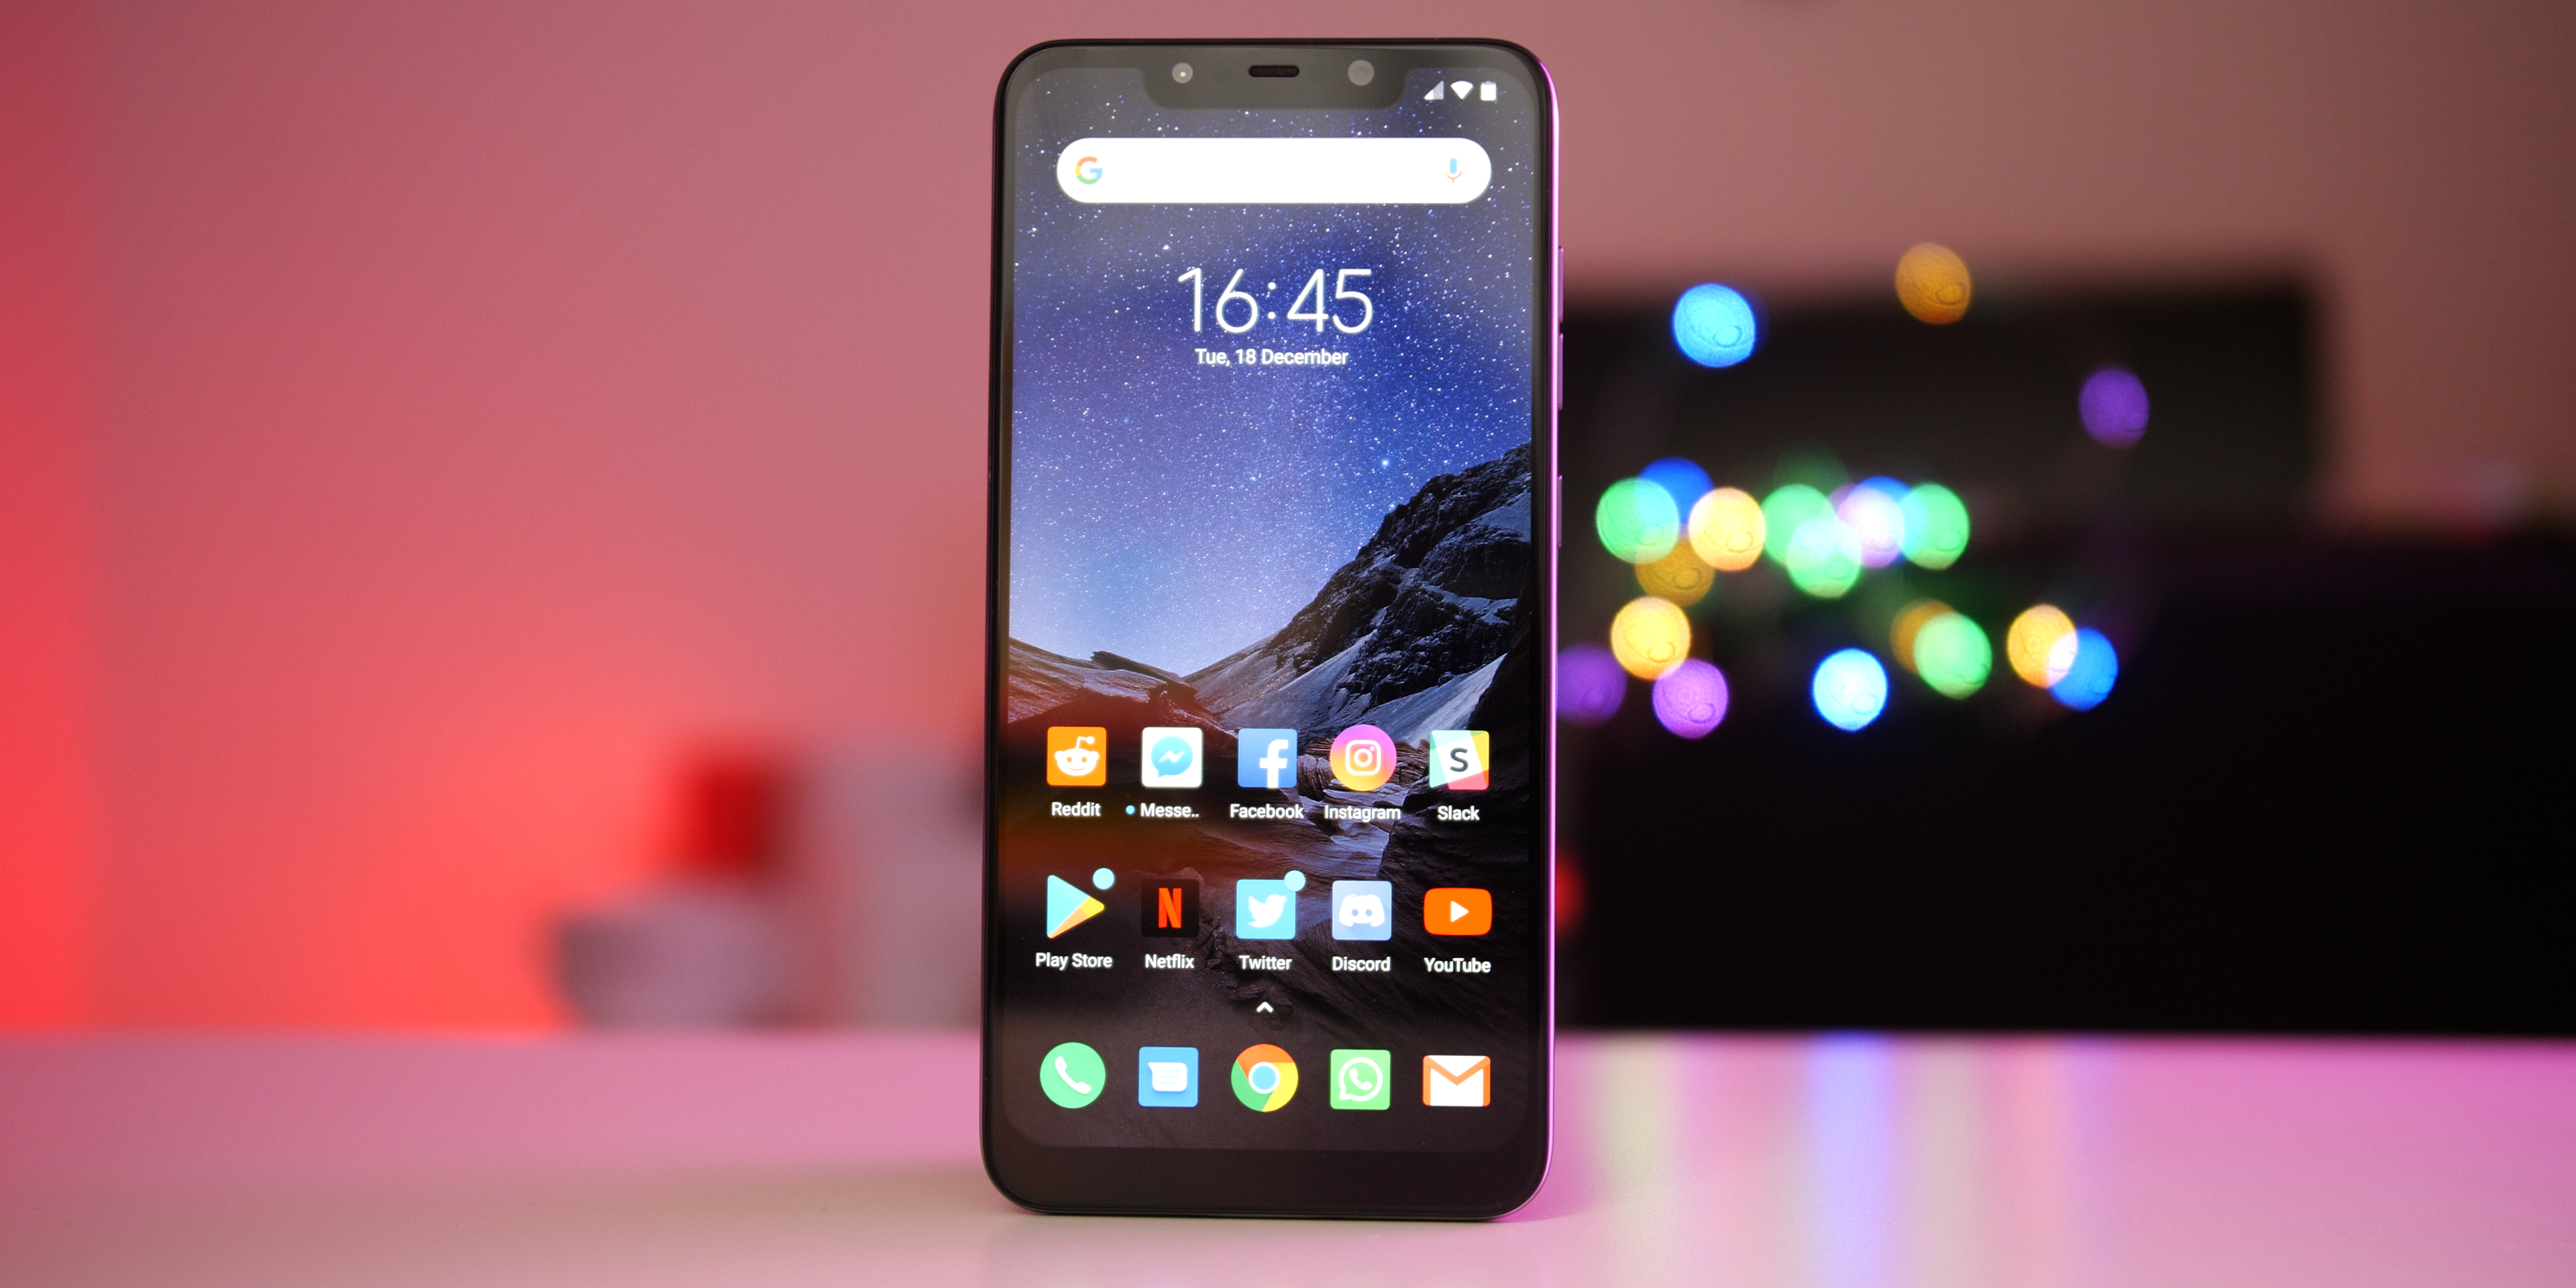 Bad Set Poco Pocophone F1 Review Super Performance At A Low Price 9to5google